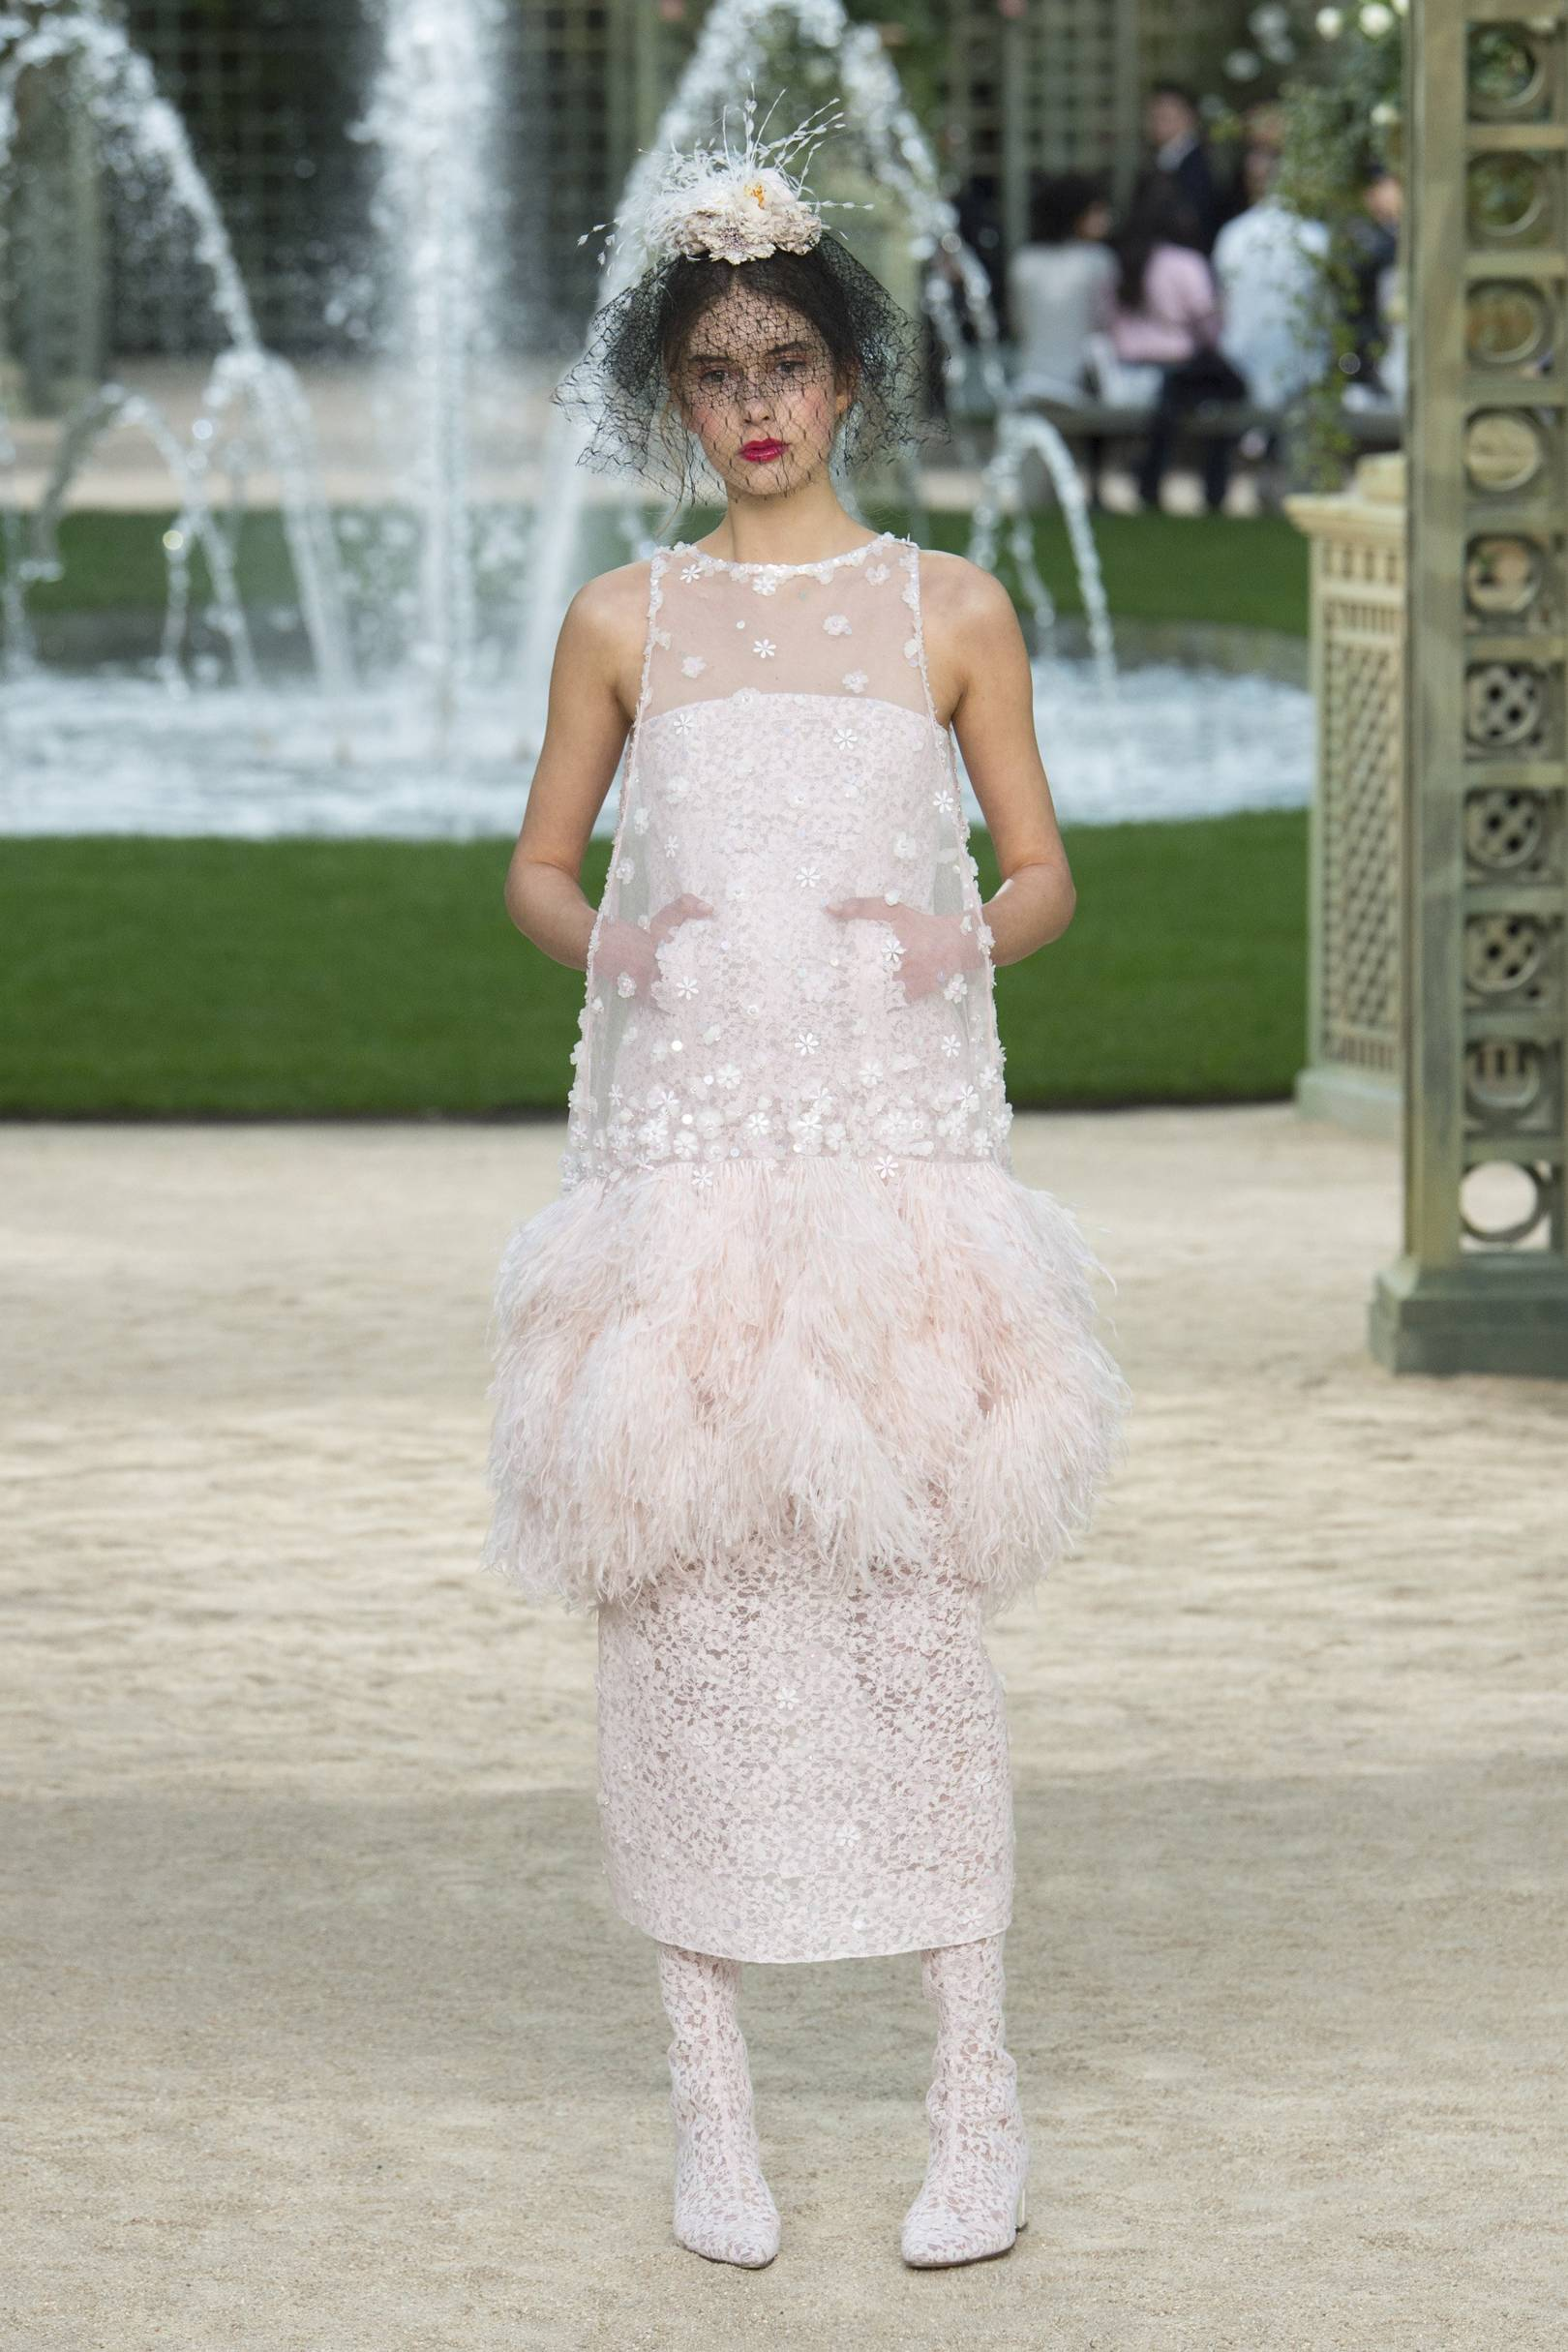 The Best Wedding Dresses From The Springsummer 2018 Couture Shows